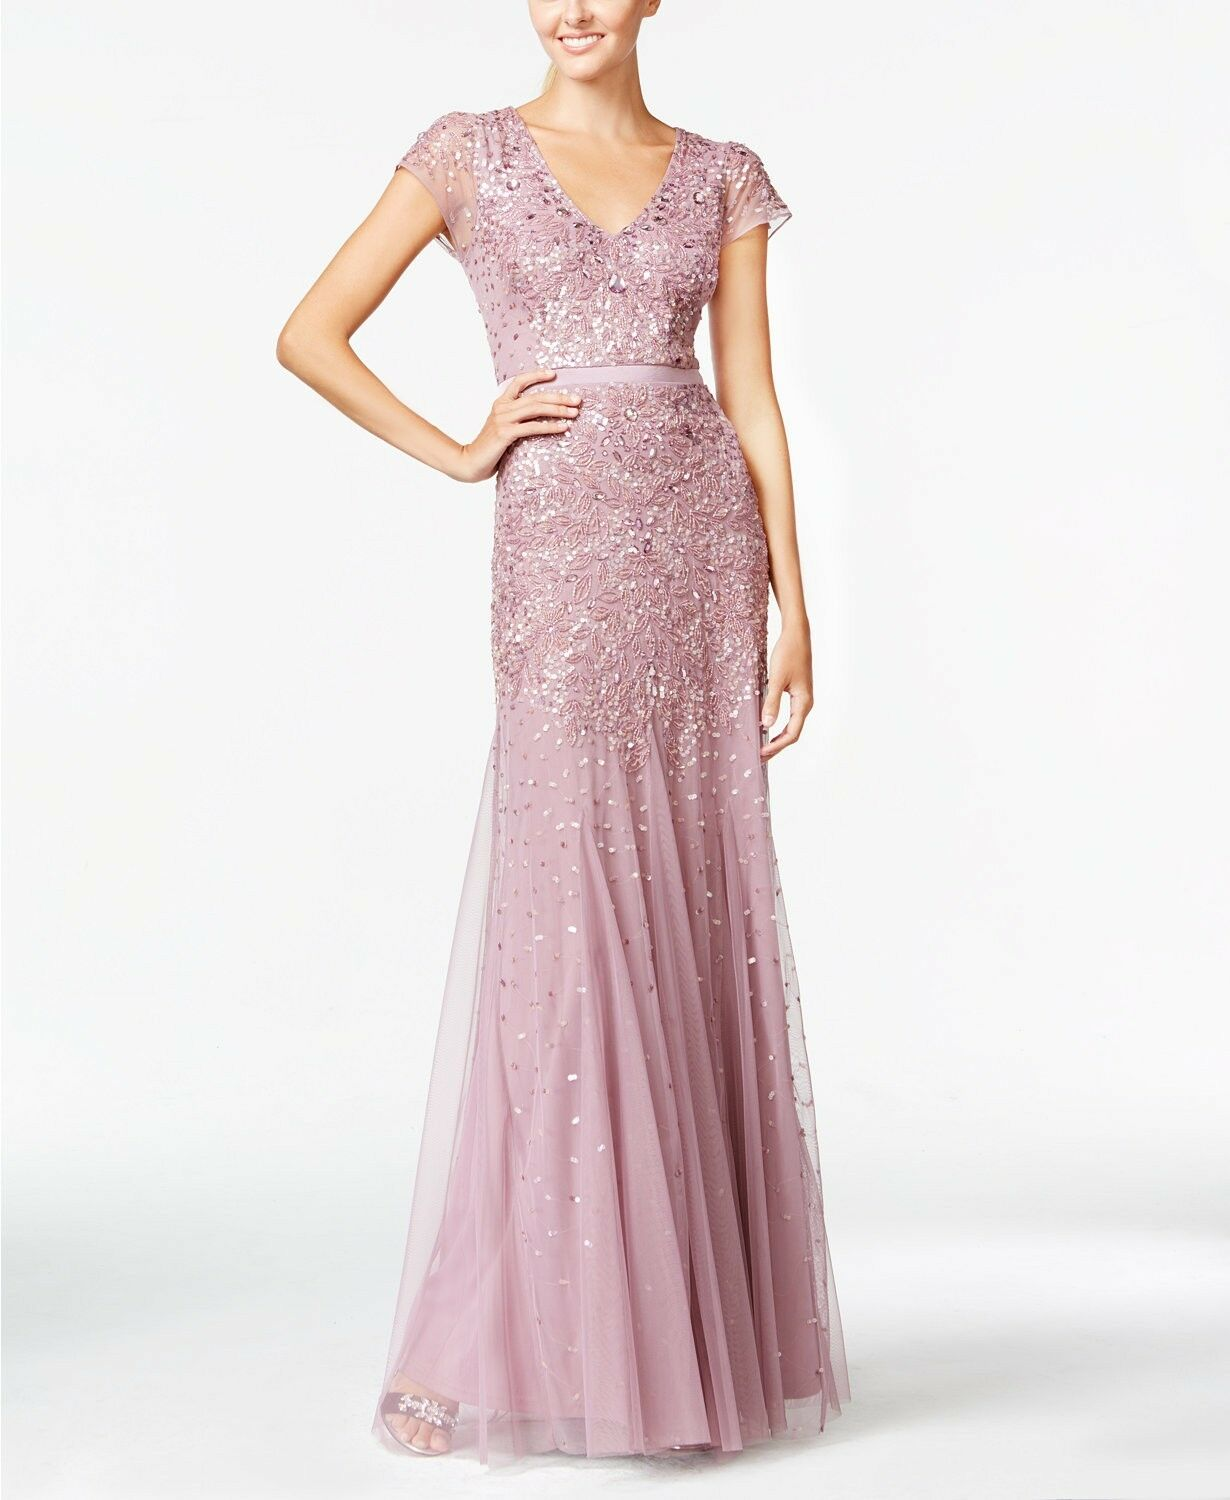 ADRIANNA PAPELL DUSTY Rose Pink Cap-Sleeve Beaded Embellished Gown ...